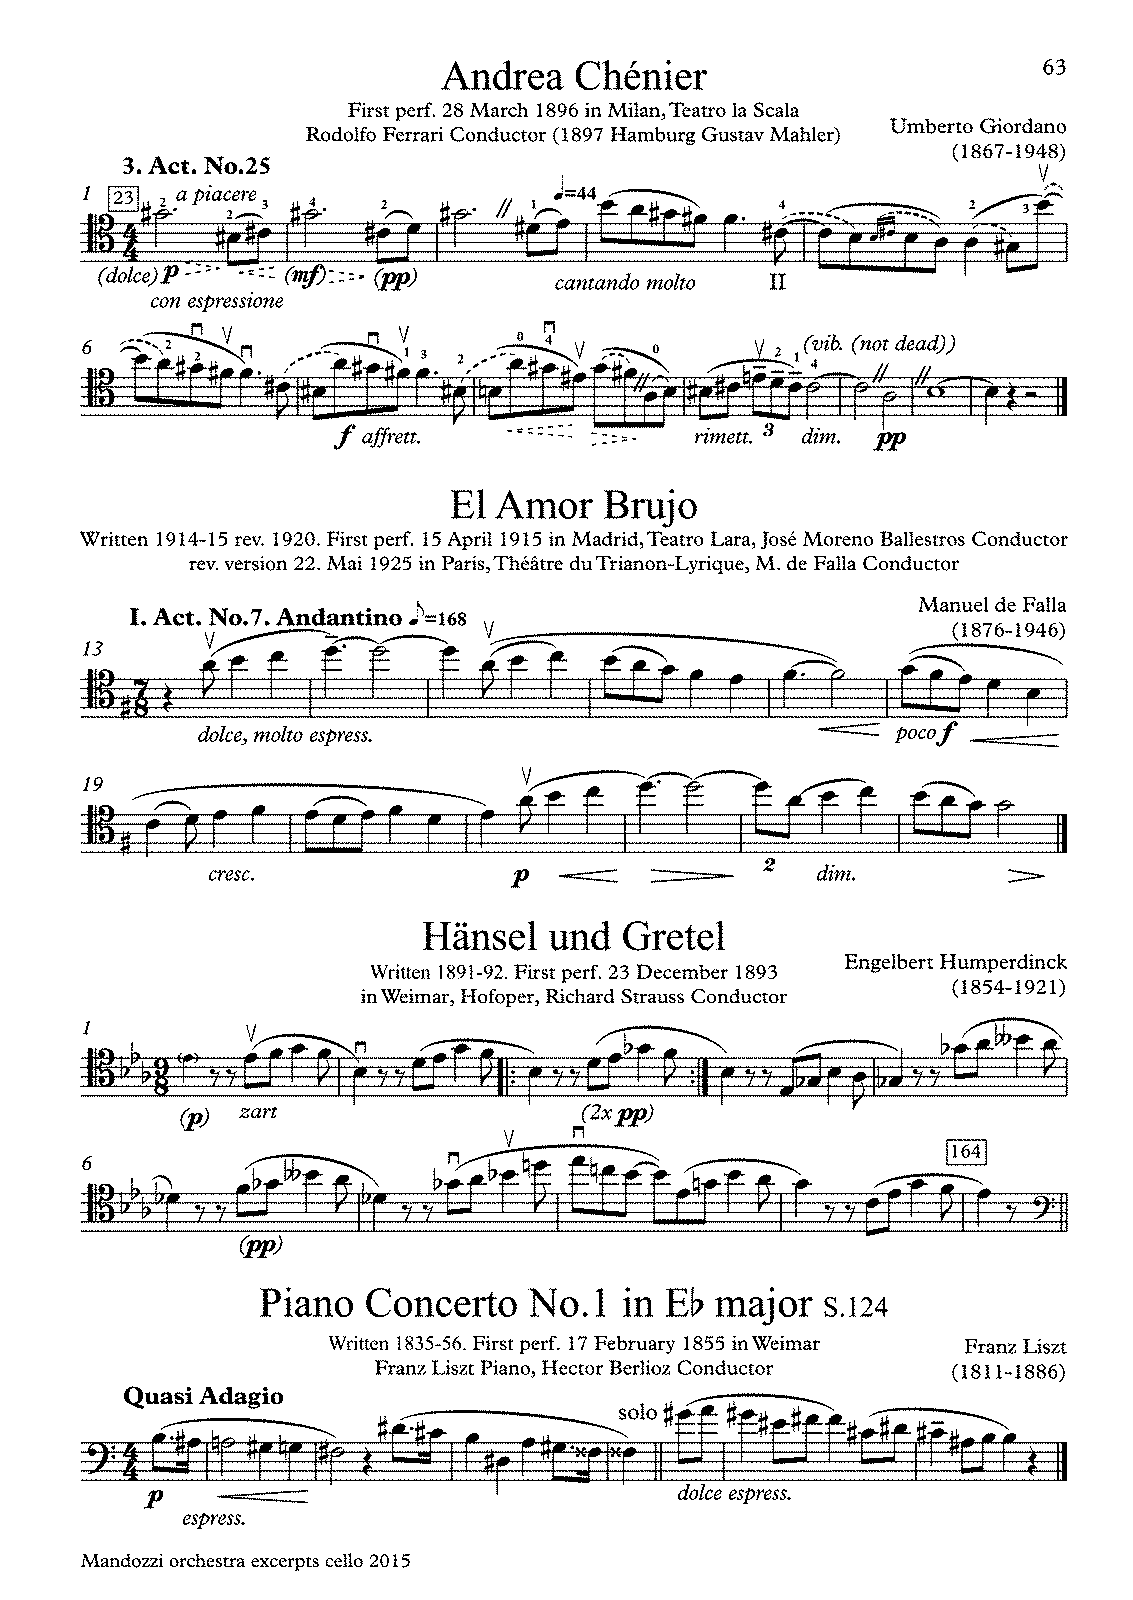 PMLP11392-Humperdinck Hänsel und Gretel Cello Solo expts Mandozzi.pdf